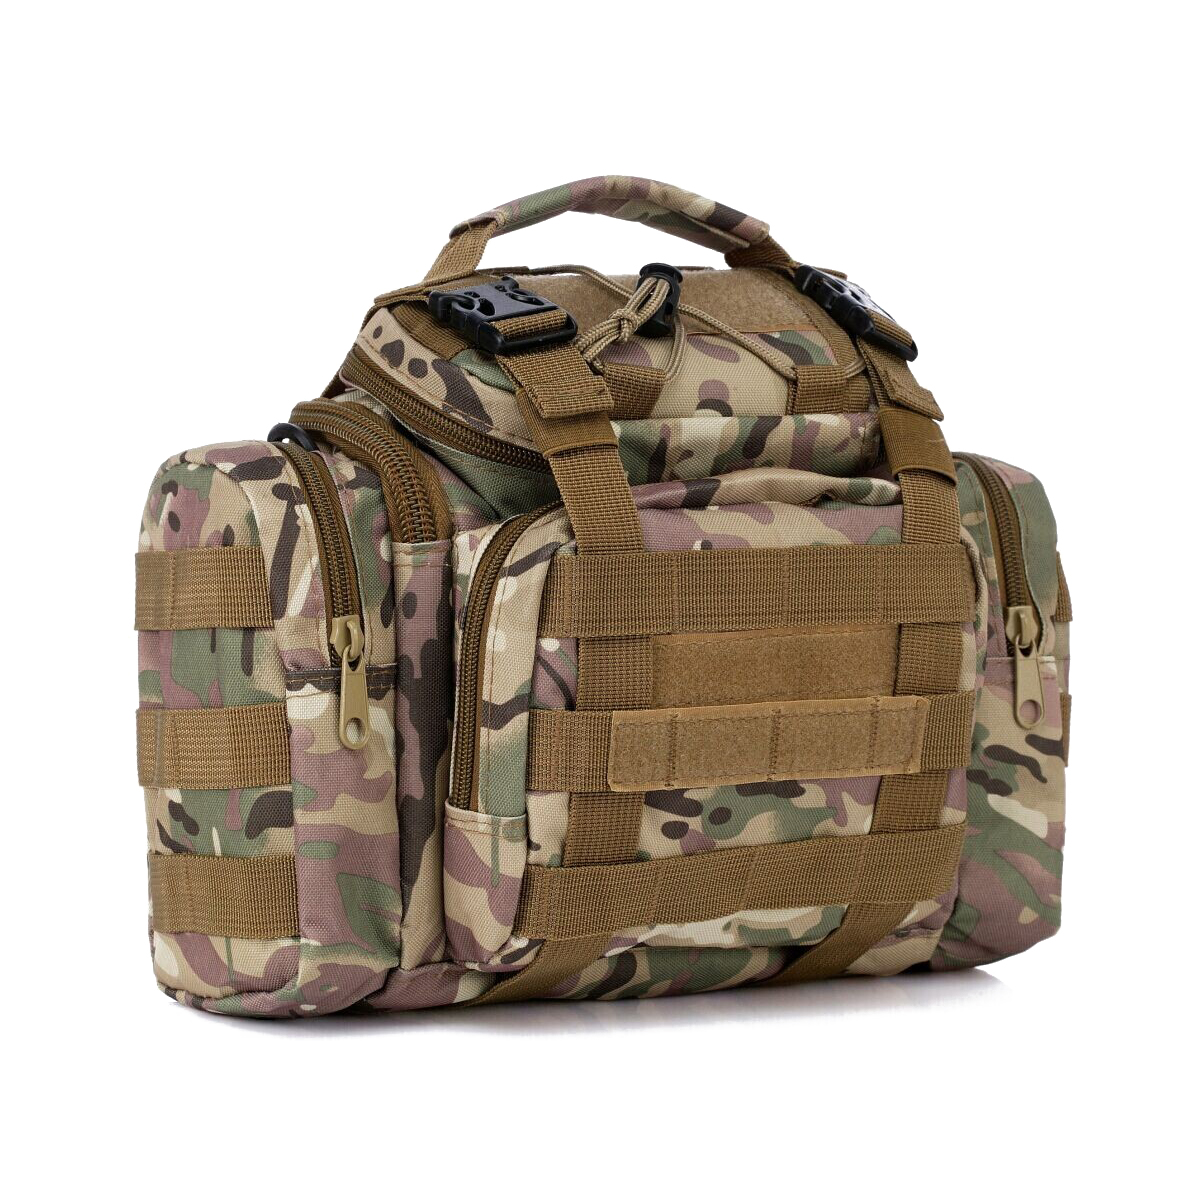 JHO-Sea/<font><b>Carp</b></font>/Fly Fishing Tackle Bag Waterproof Storage Waist Shoulder Carry Case CP camouflage